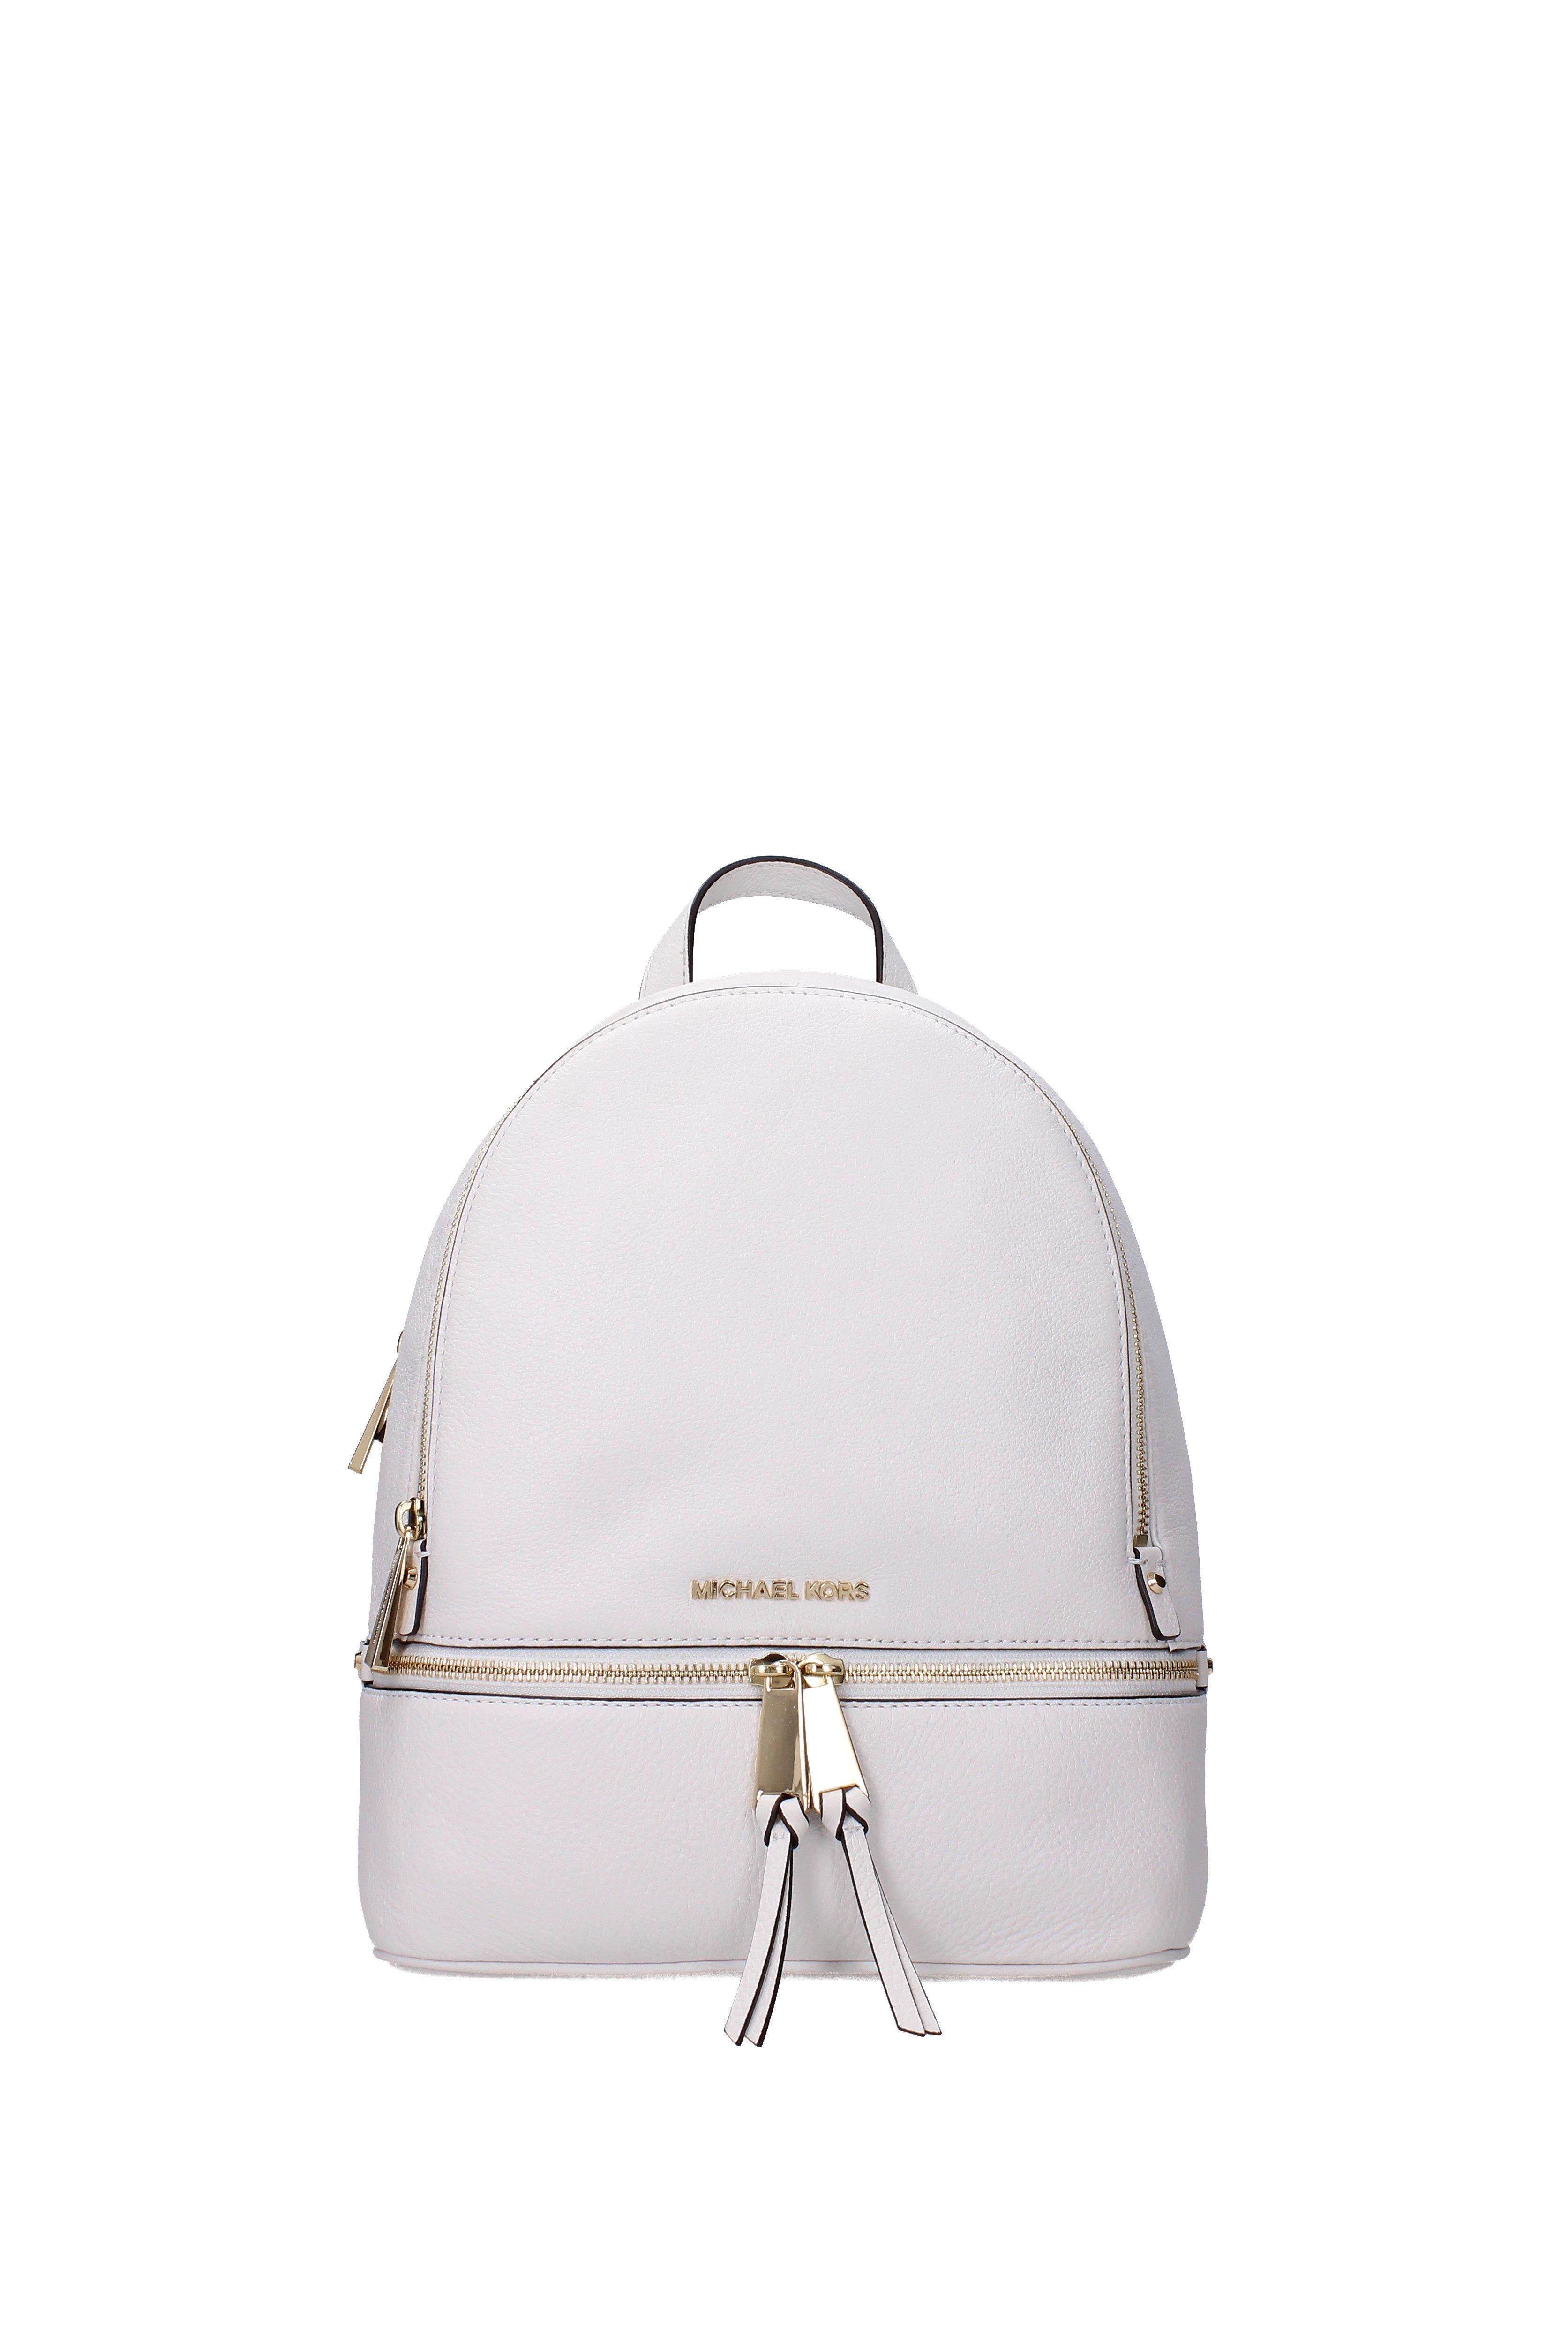 d713b60d8aa2 Michael Kors - Backpacks And Bumbags Rhea Zip Md Women White - Lyst. View  fullscreen